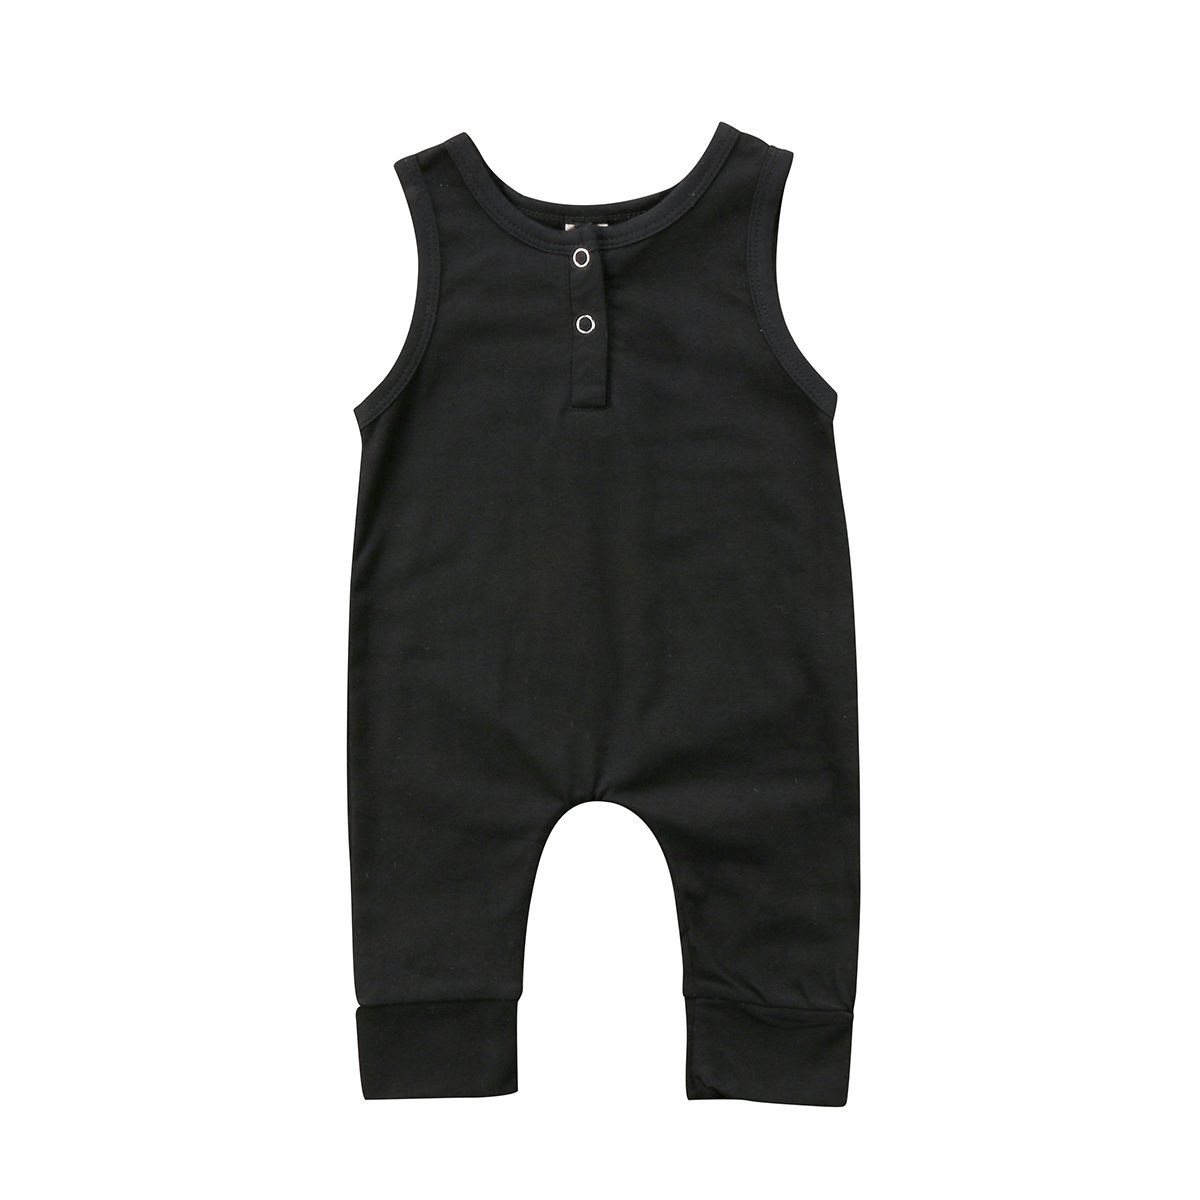 Baby Clothing Jumpsuit Romper Newborn Infant Black Baby-Boys-Girls Sleeveless Summer title=